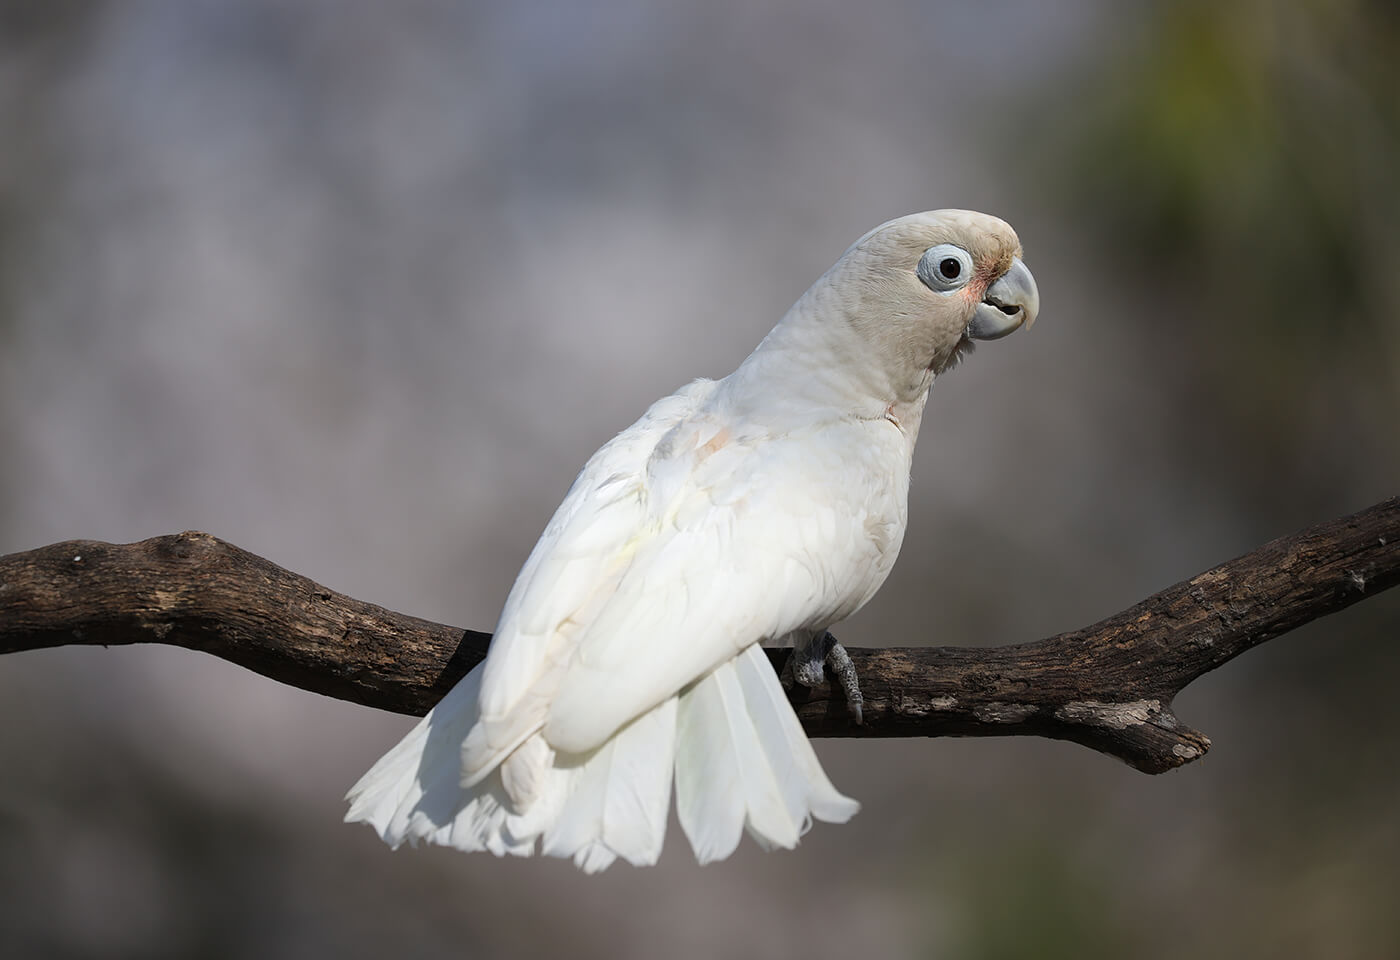 White galah - sample photo by Canon EOS 6D Mark II